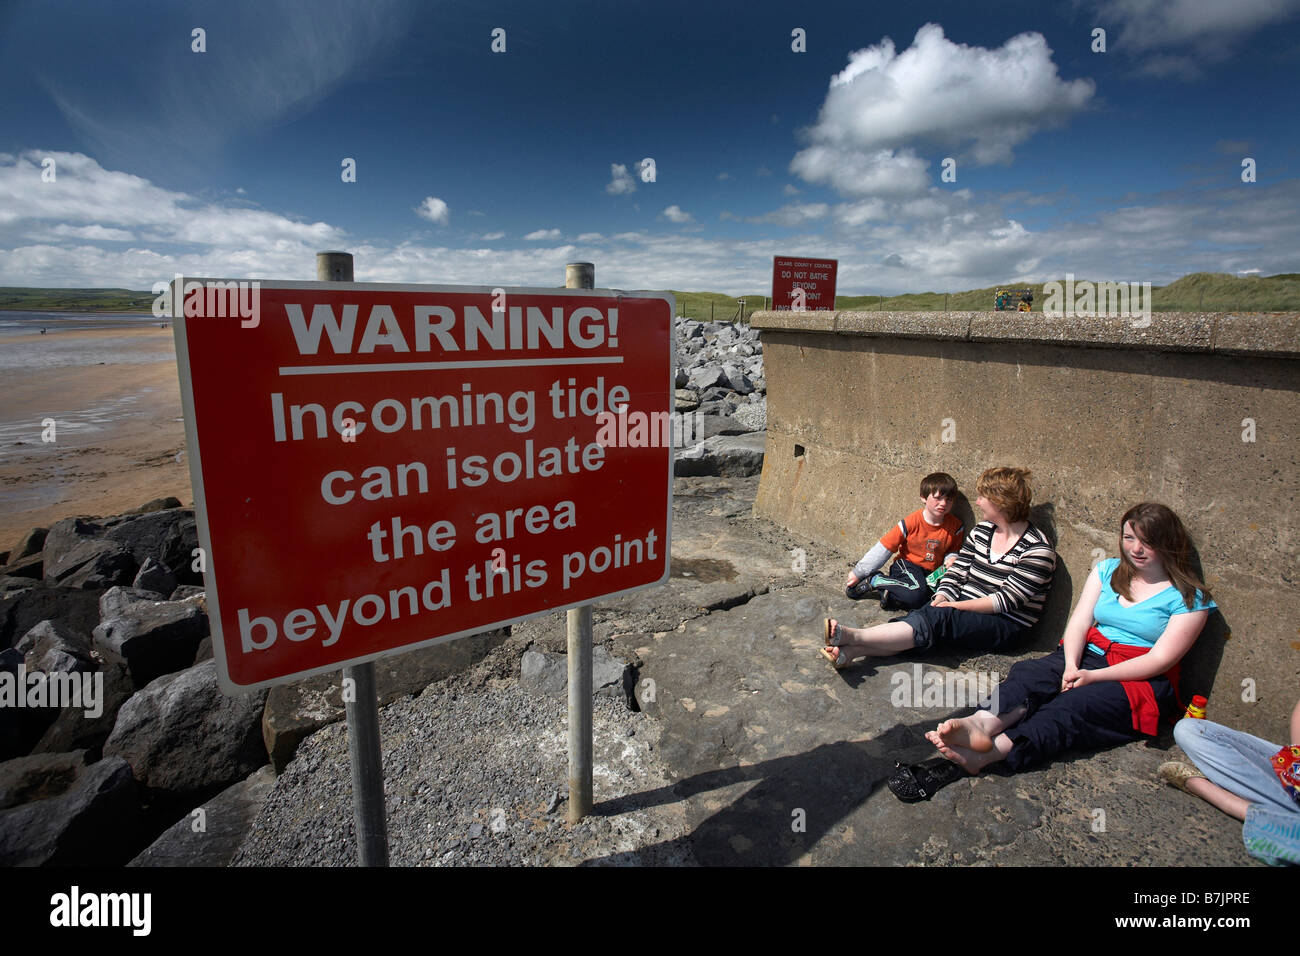 Family sitting in front of a warning sign. Leaned against a stone wall overlooking the beach. - Stock Image